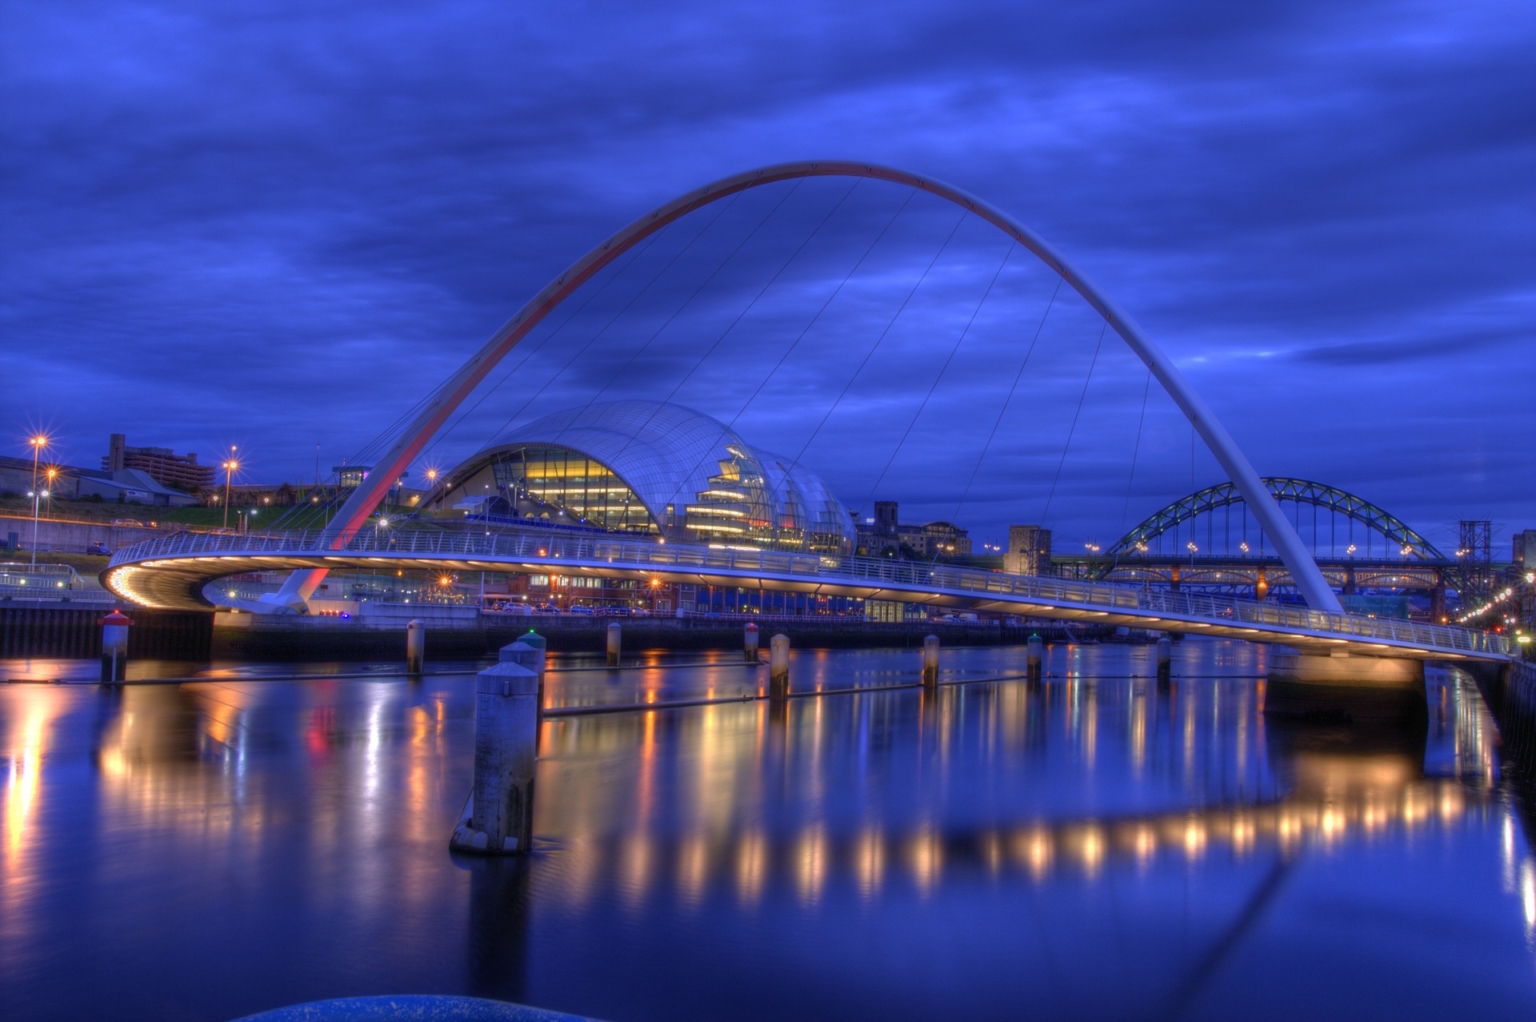 Millennium Bridge and Sage Gateshead